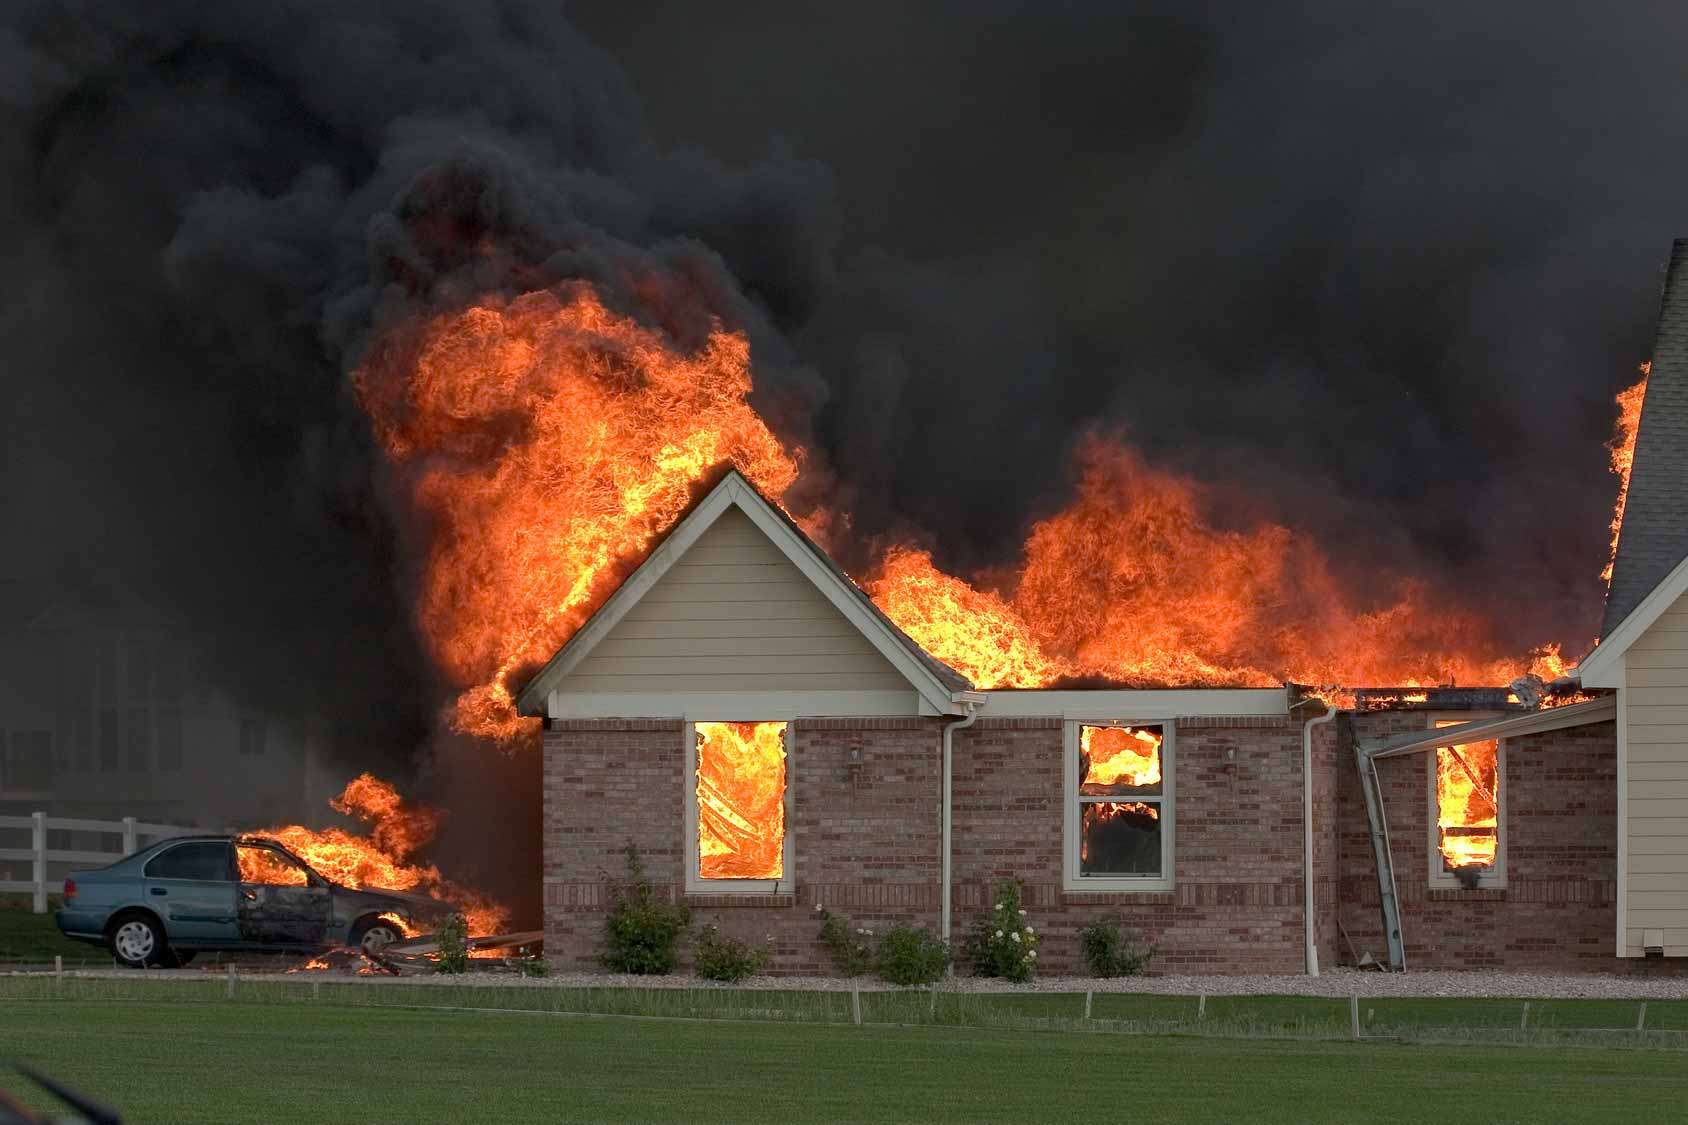 a house on fire essay Fire protection systems essay fire is an uncontrolled process of burning that creates a danger to human life and is accompanied by the destruction of property.